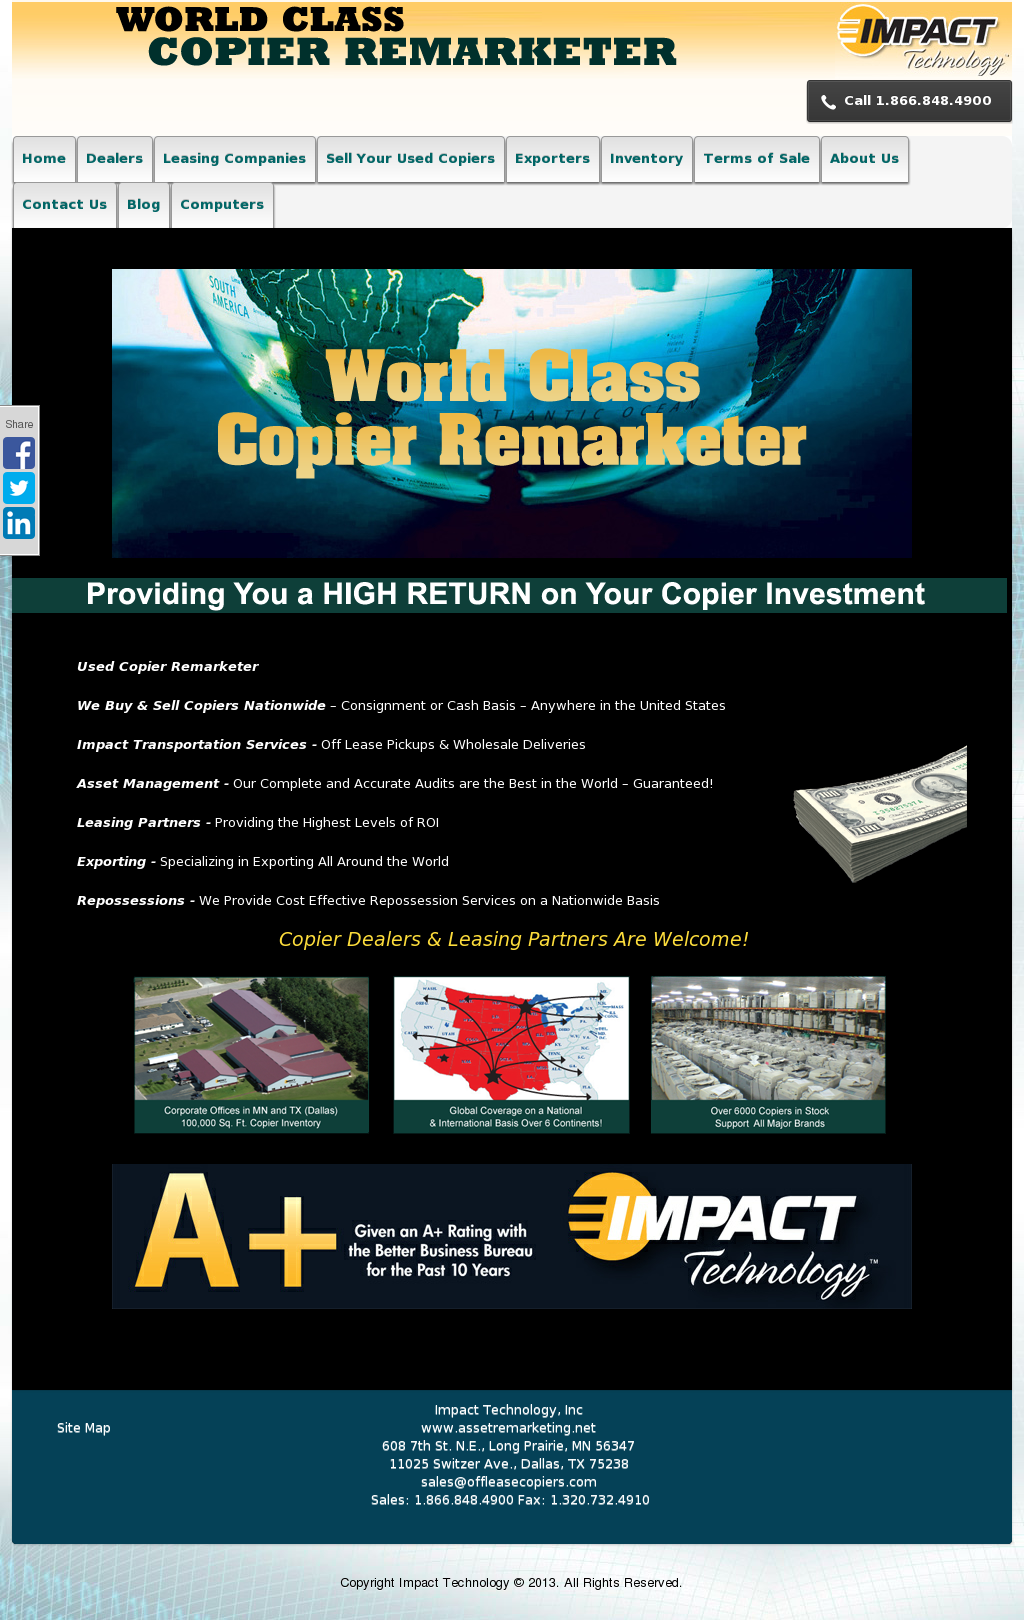 Impact Technology Competitors, Revenue and Employees - Owler